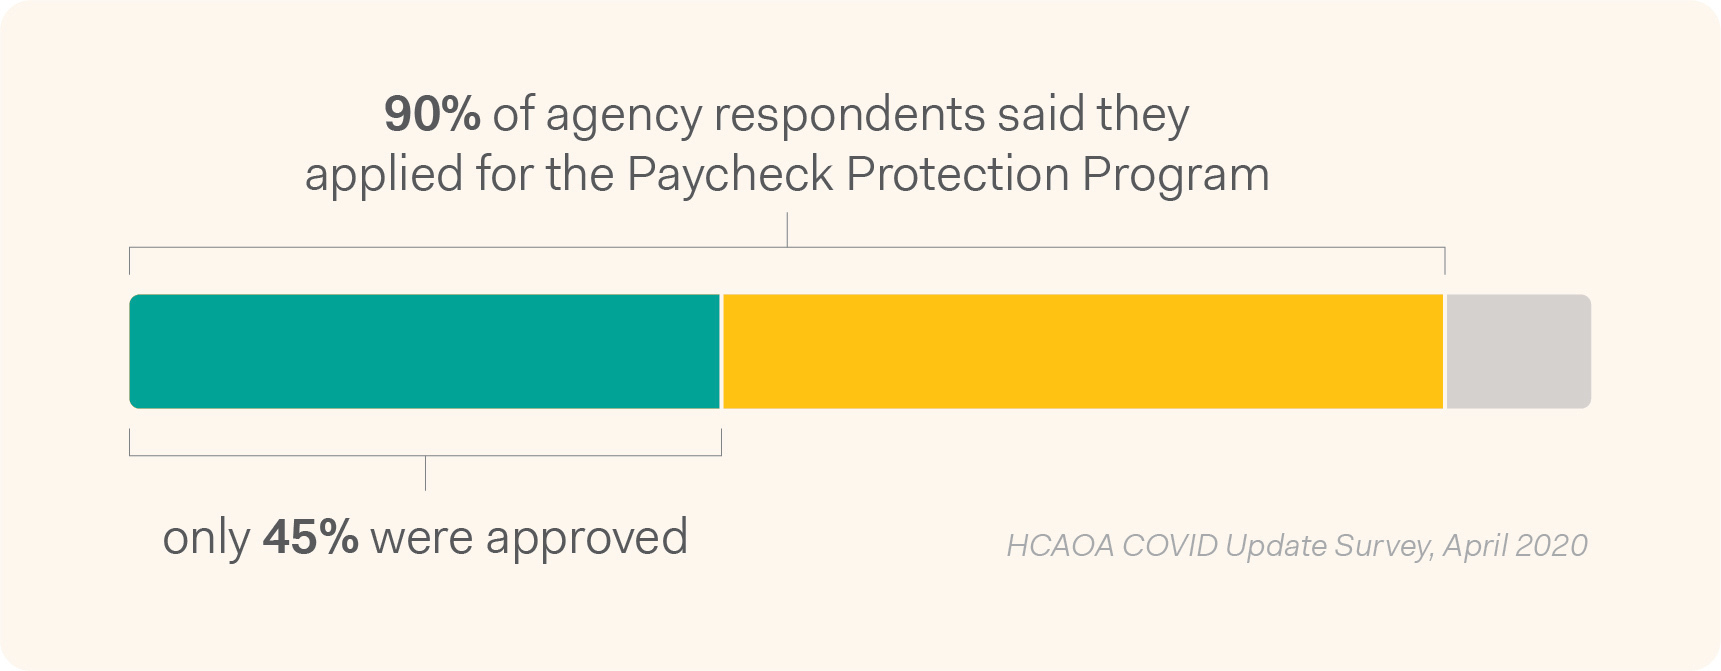 90% of home care agency respondents said they applied for the Paycheck Protection Program, but only 45% were approved.